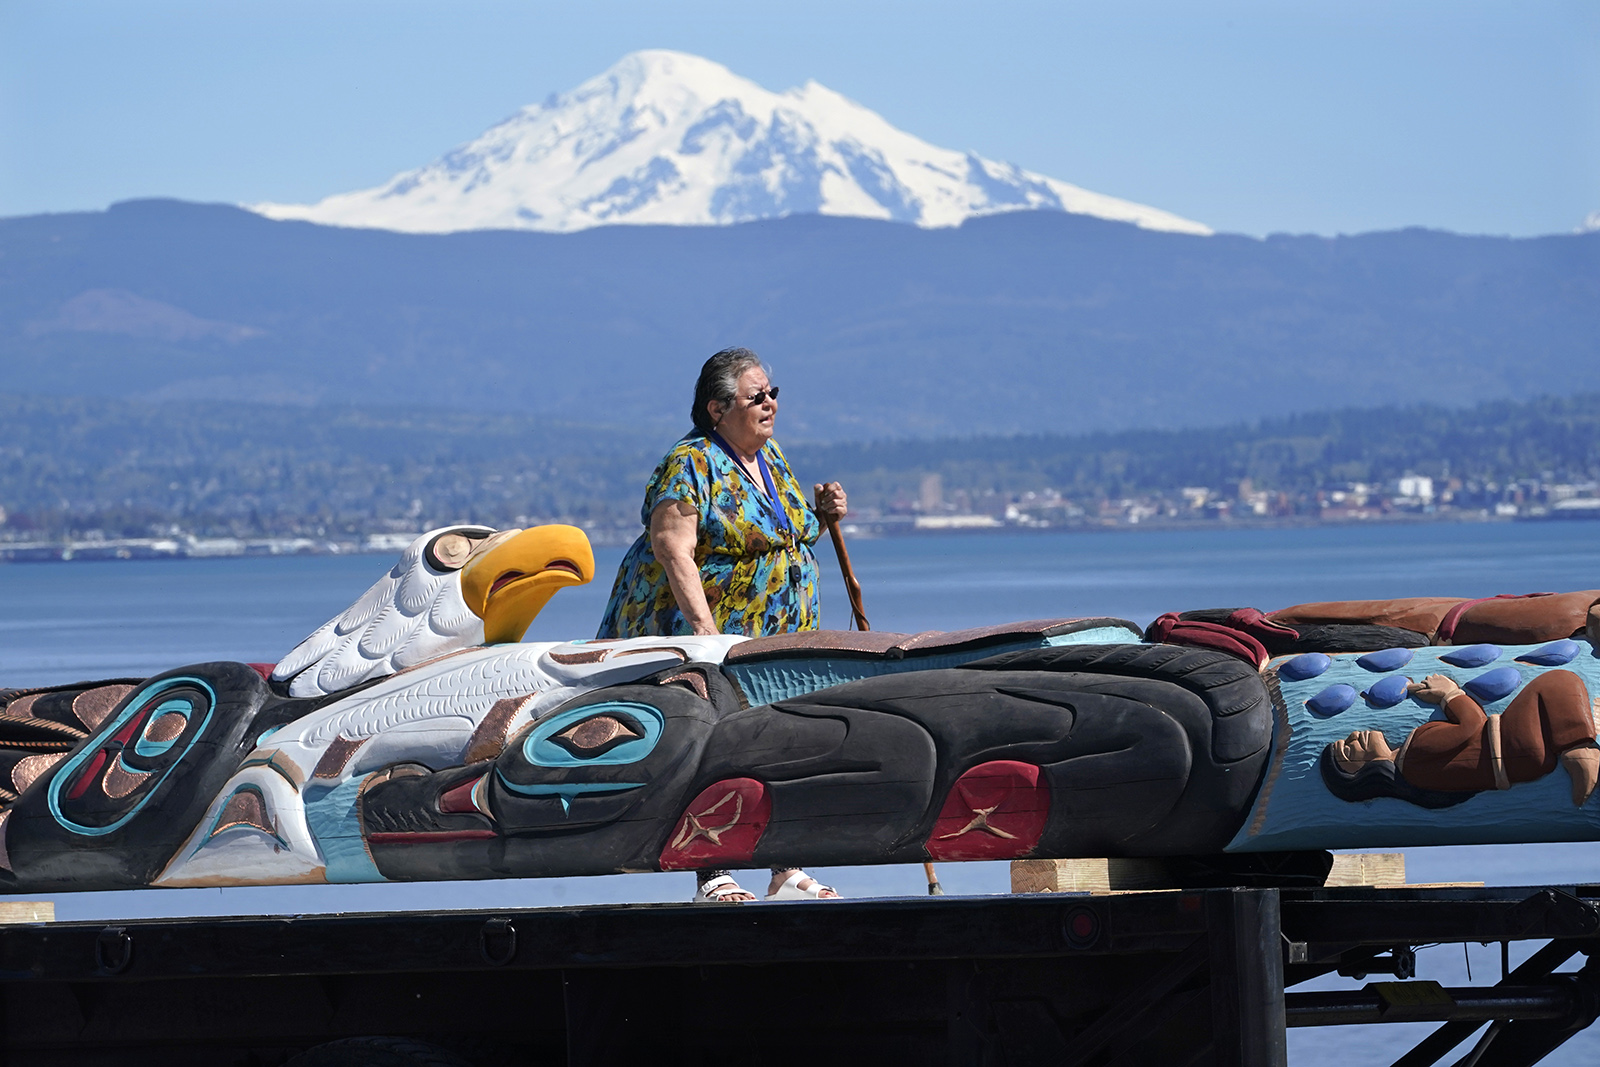 Lummi Nation elder Lucille Spencer prays over a nearly 25-foot totem pole, to be gifted from the tribe to the administration of President Joe Biden, in view of Mount Baker, background, shortly after the pole was moved from a carving shed, Monday, April 19, 2021, on the Lummi Reservation, near Bellingham, Washington. The pole, carved from a 400-year old red cedar, will make a journey from the reservation past sacred indigenous sites, before arriving in Washington, D.C., in early June. Organizers said that the totem pole is a reminder to leaders to honor the rights of Indigenous people and their sacred sites. (AP Photo/Elaine Thompson)